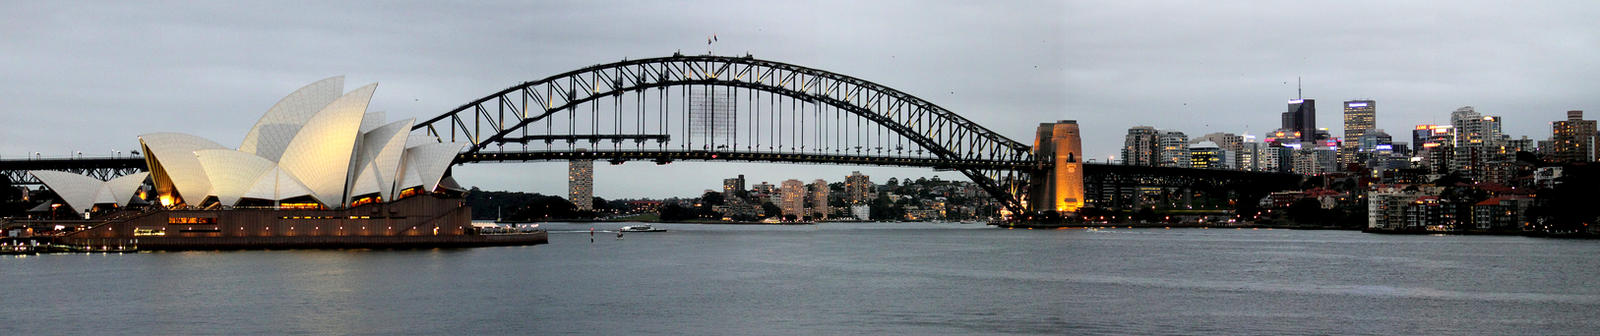 Sydney Harbour Panorama by TarJakArt